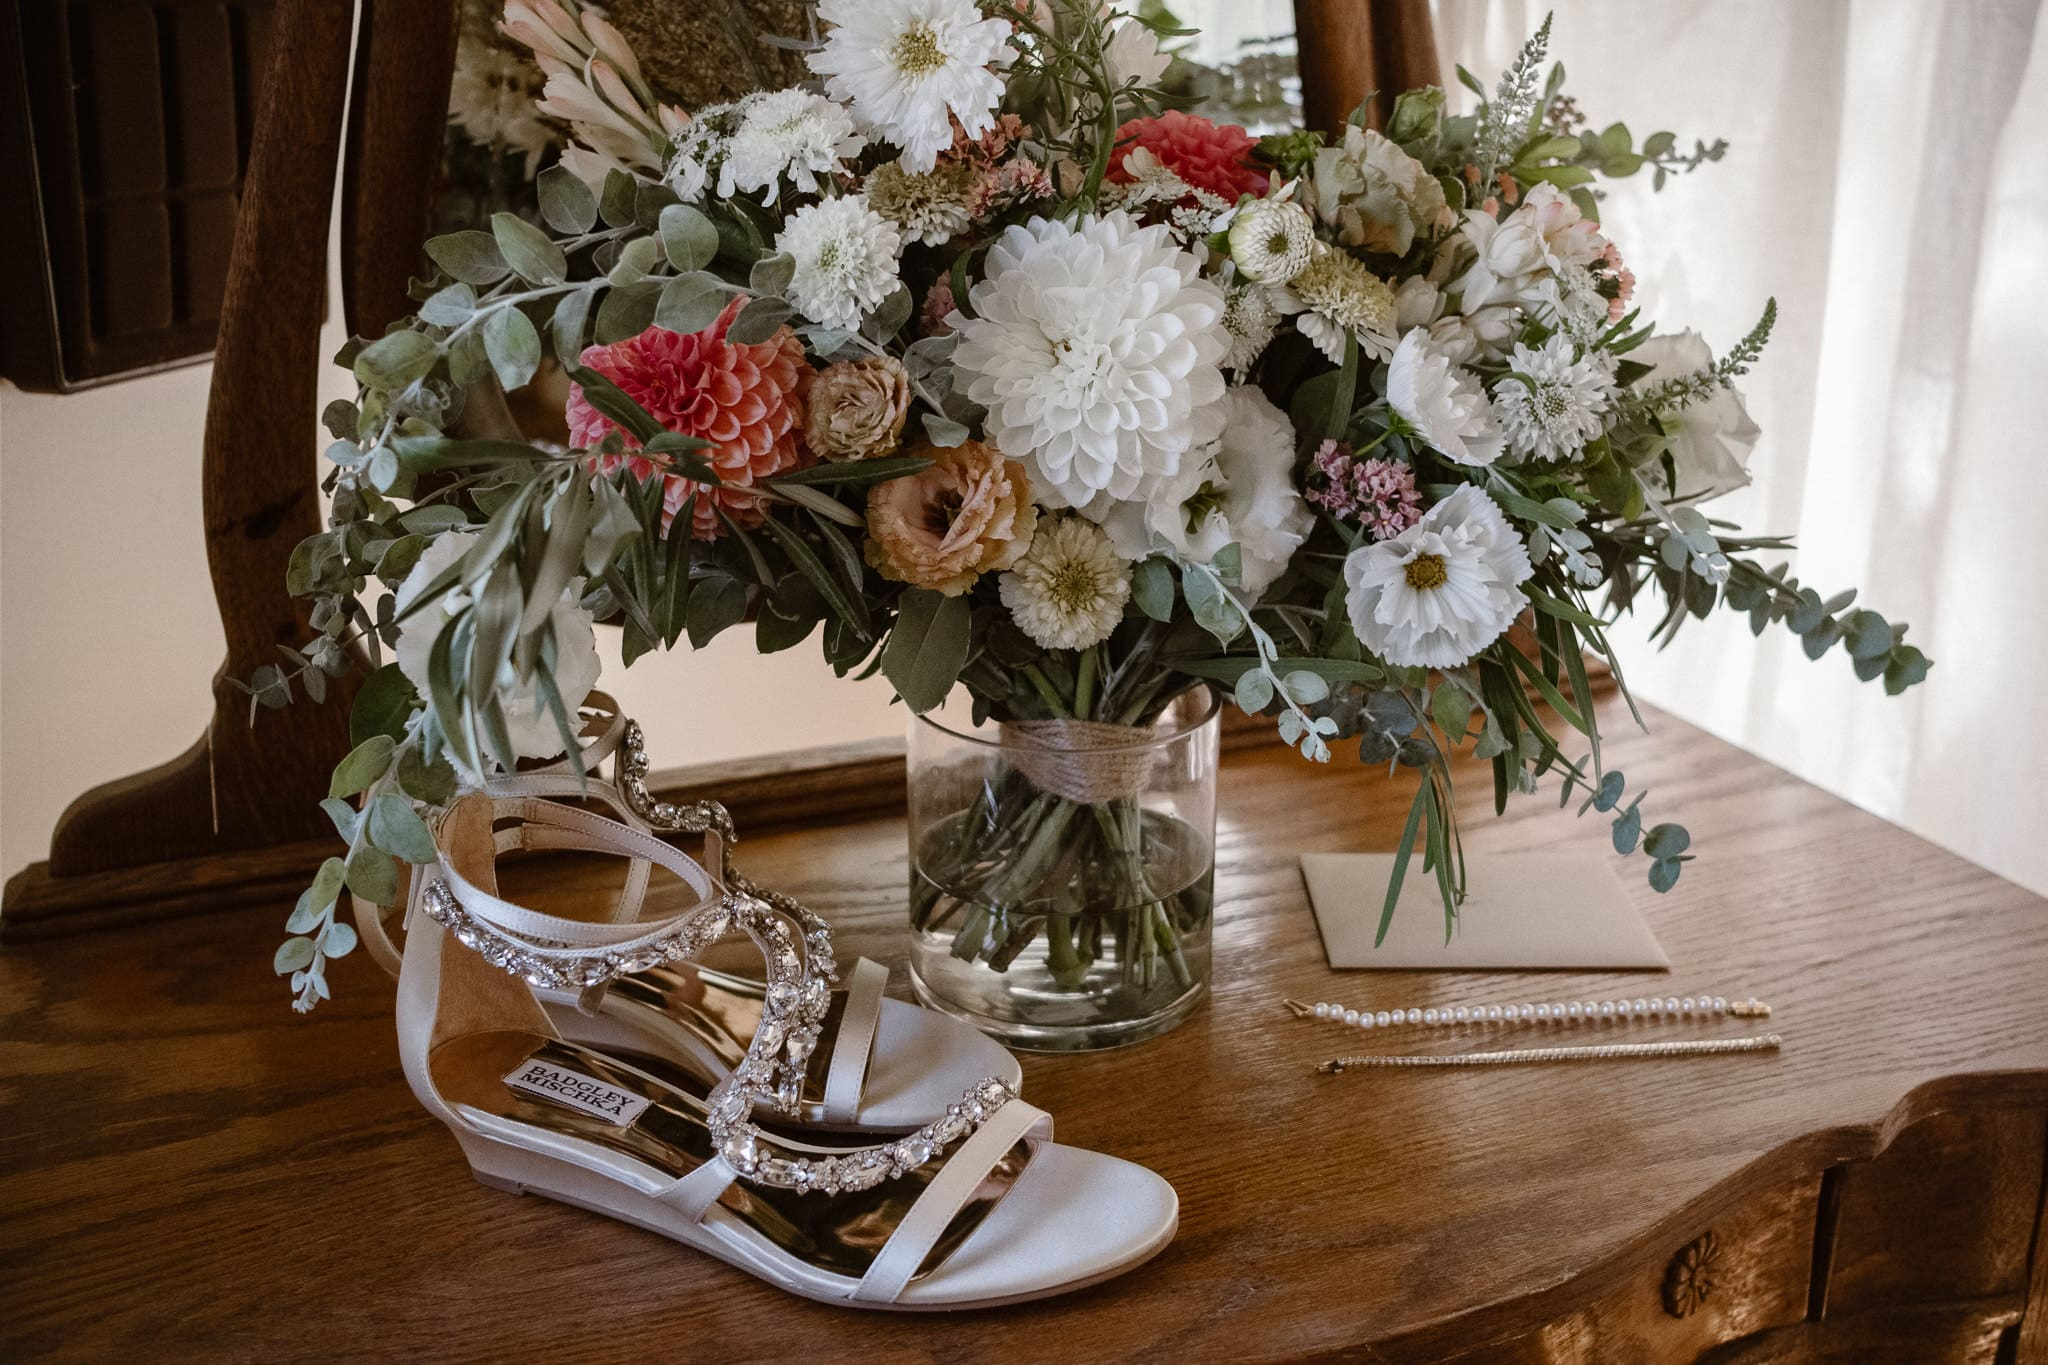 Lyons Farmette wedding photographer, Colorado intimate wedding photographer, wedding bouquet, bride's shoes and jewelry